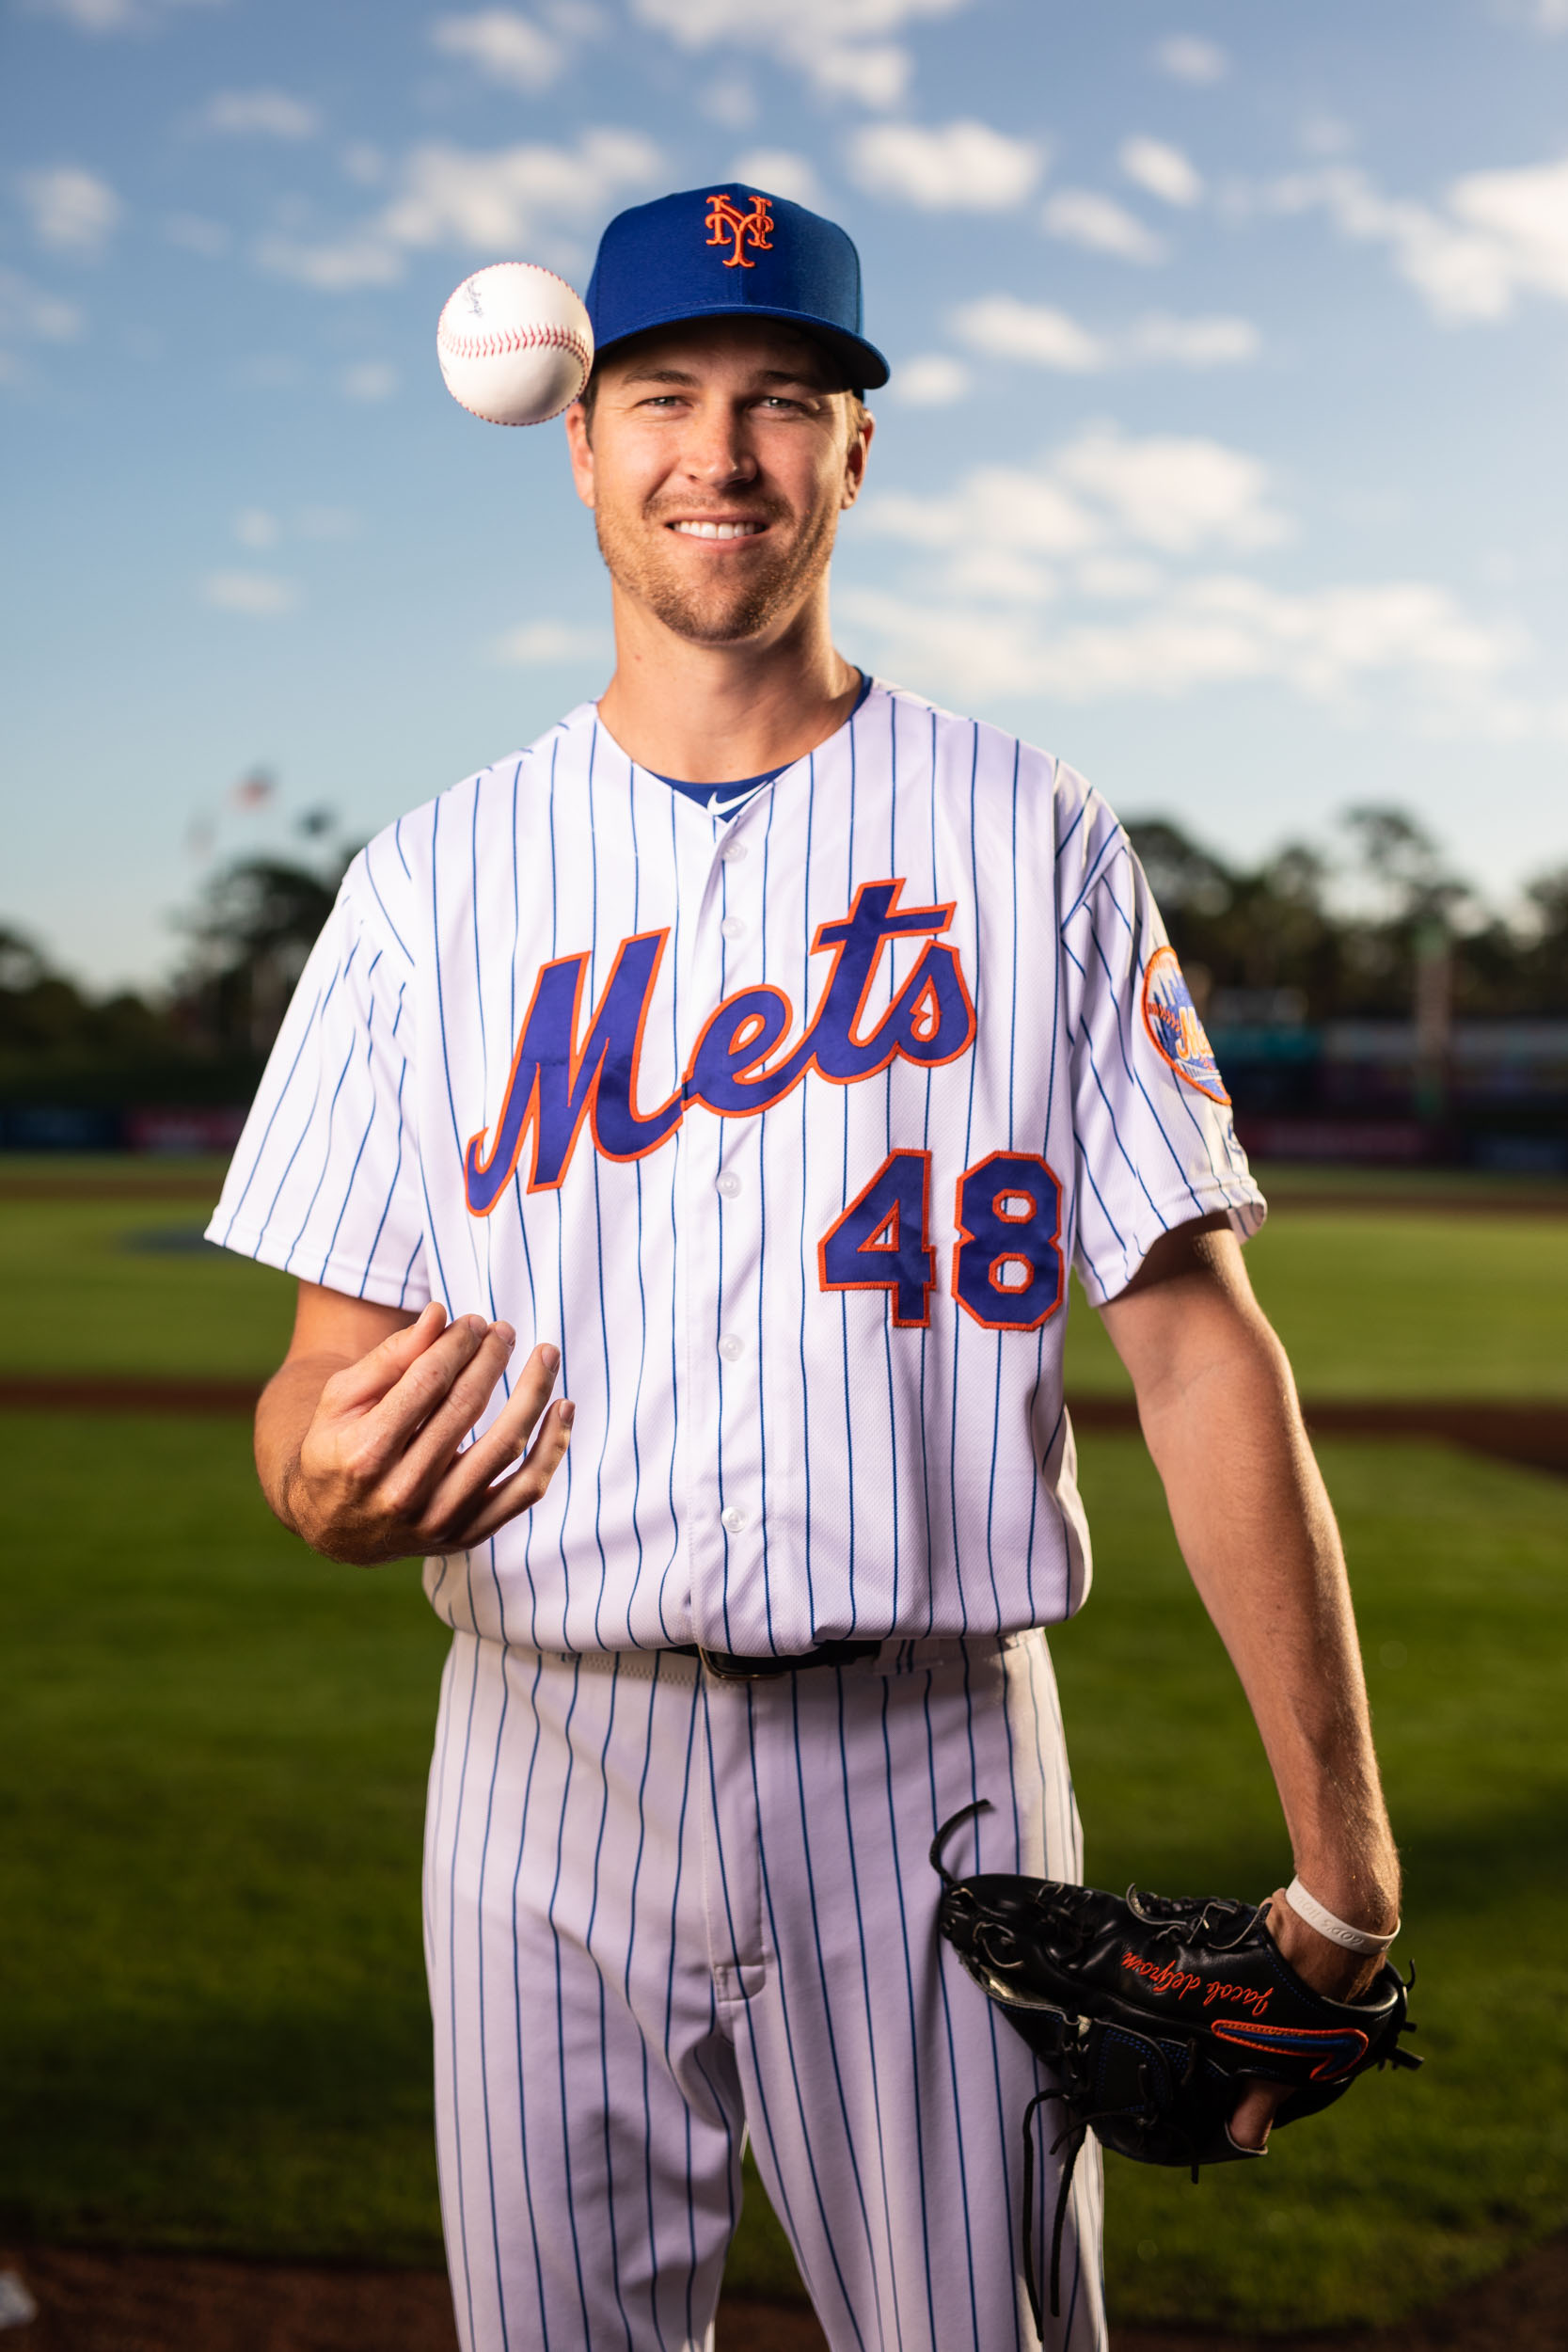 Florida Photography | Jacob deGrom for the NY Mets | Steven Martine